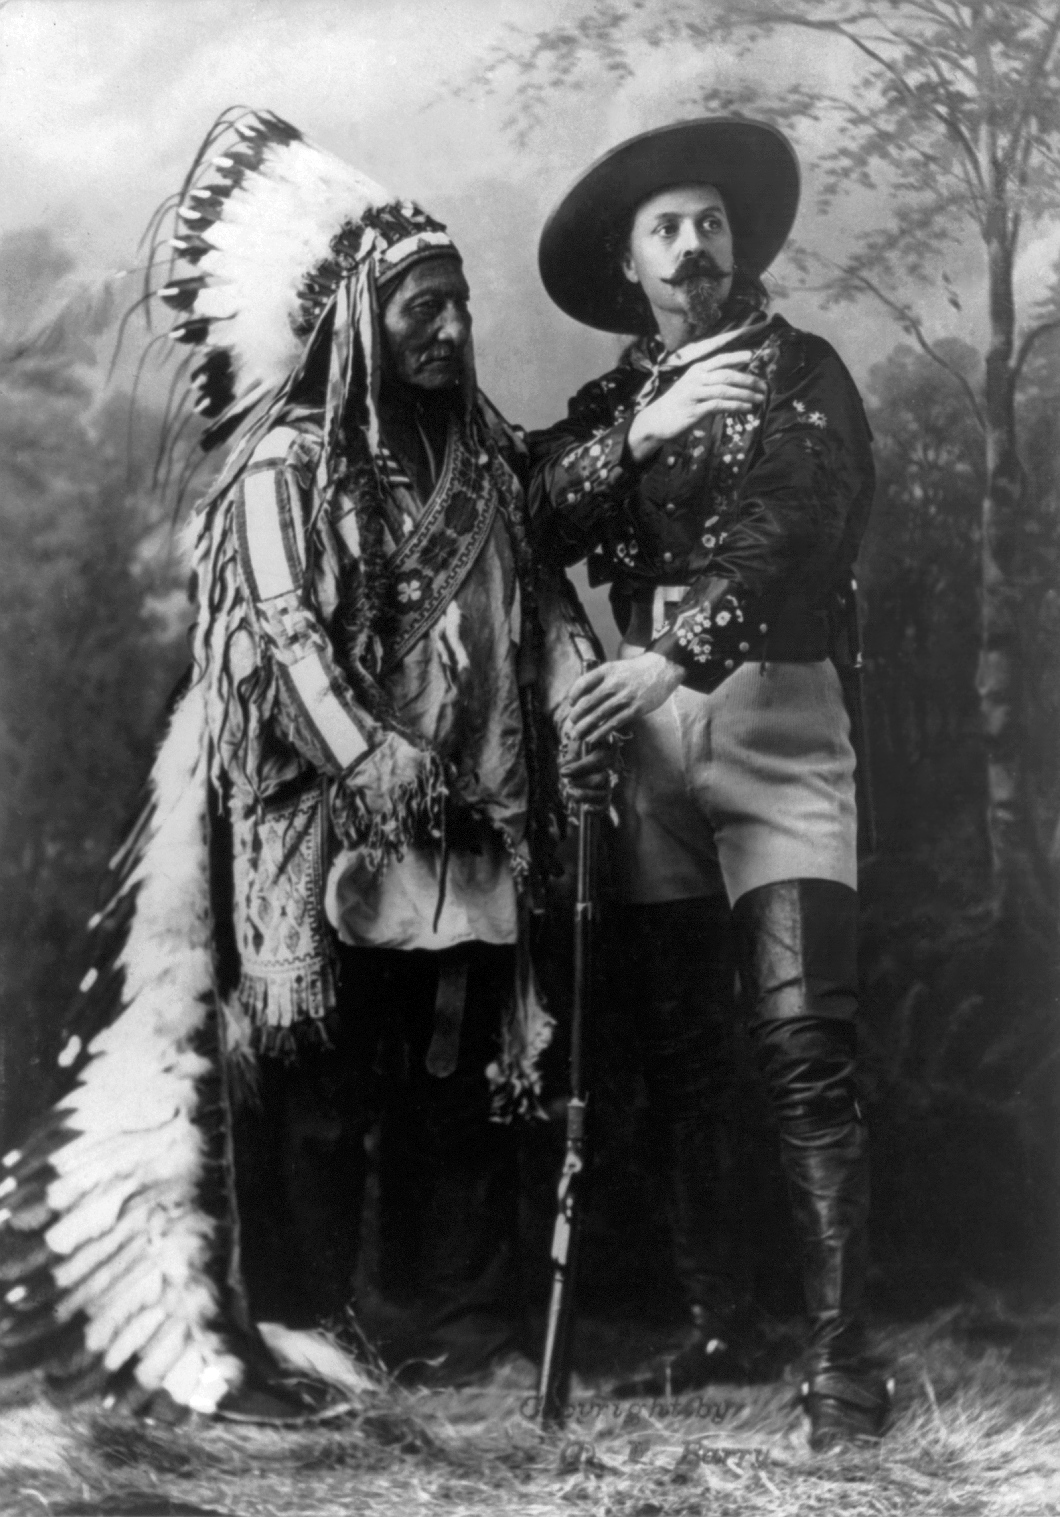 an essay on sitting bull The myth and the legend of the great chief of lakota named sitting bull, strong and fiercest amongst all of men in his race, had been given the title of being one of the most popular native americans essay sample on sitting bull and the paradox of.